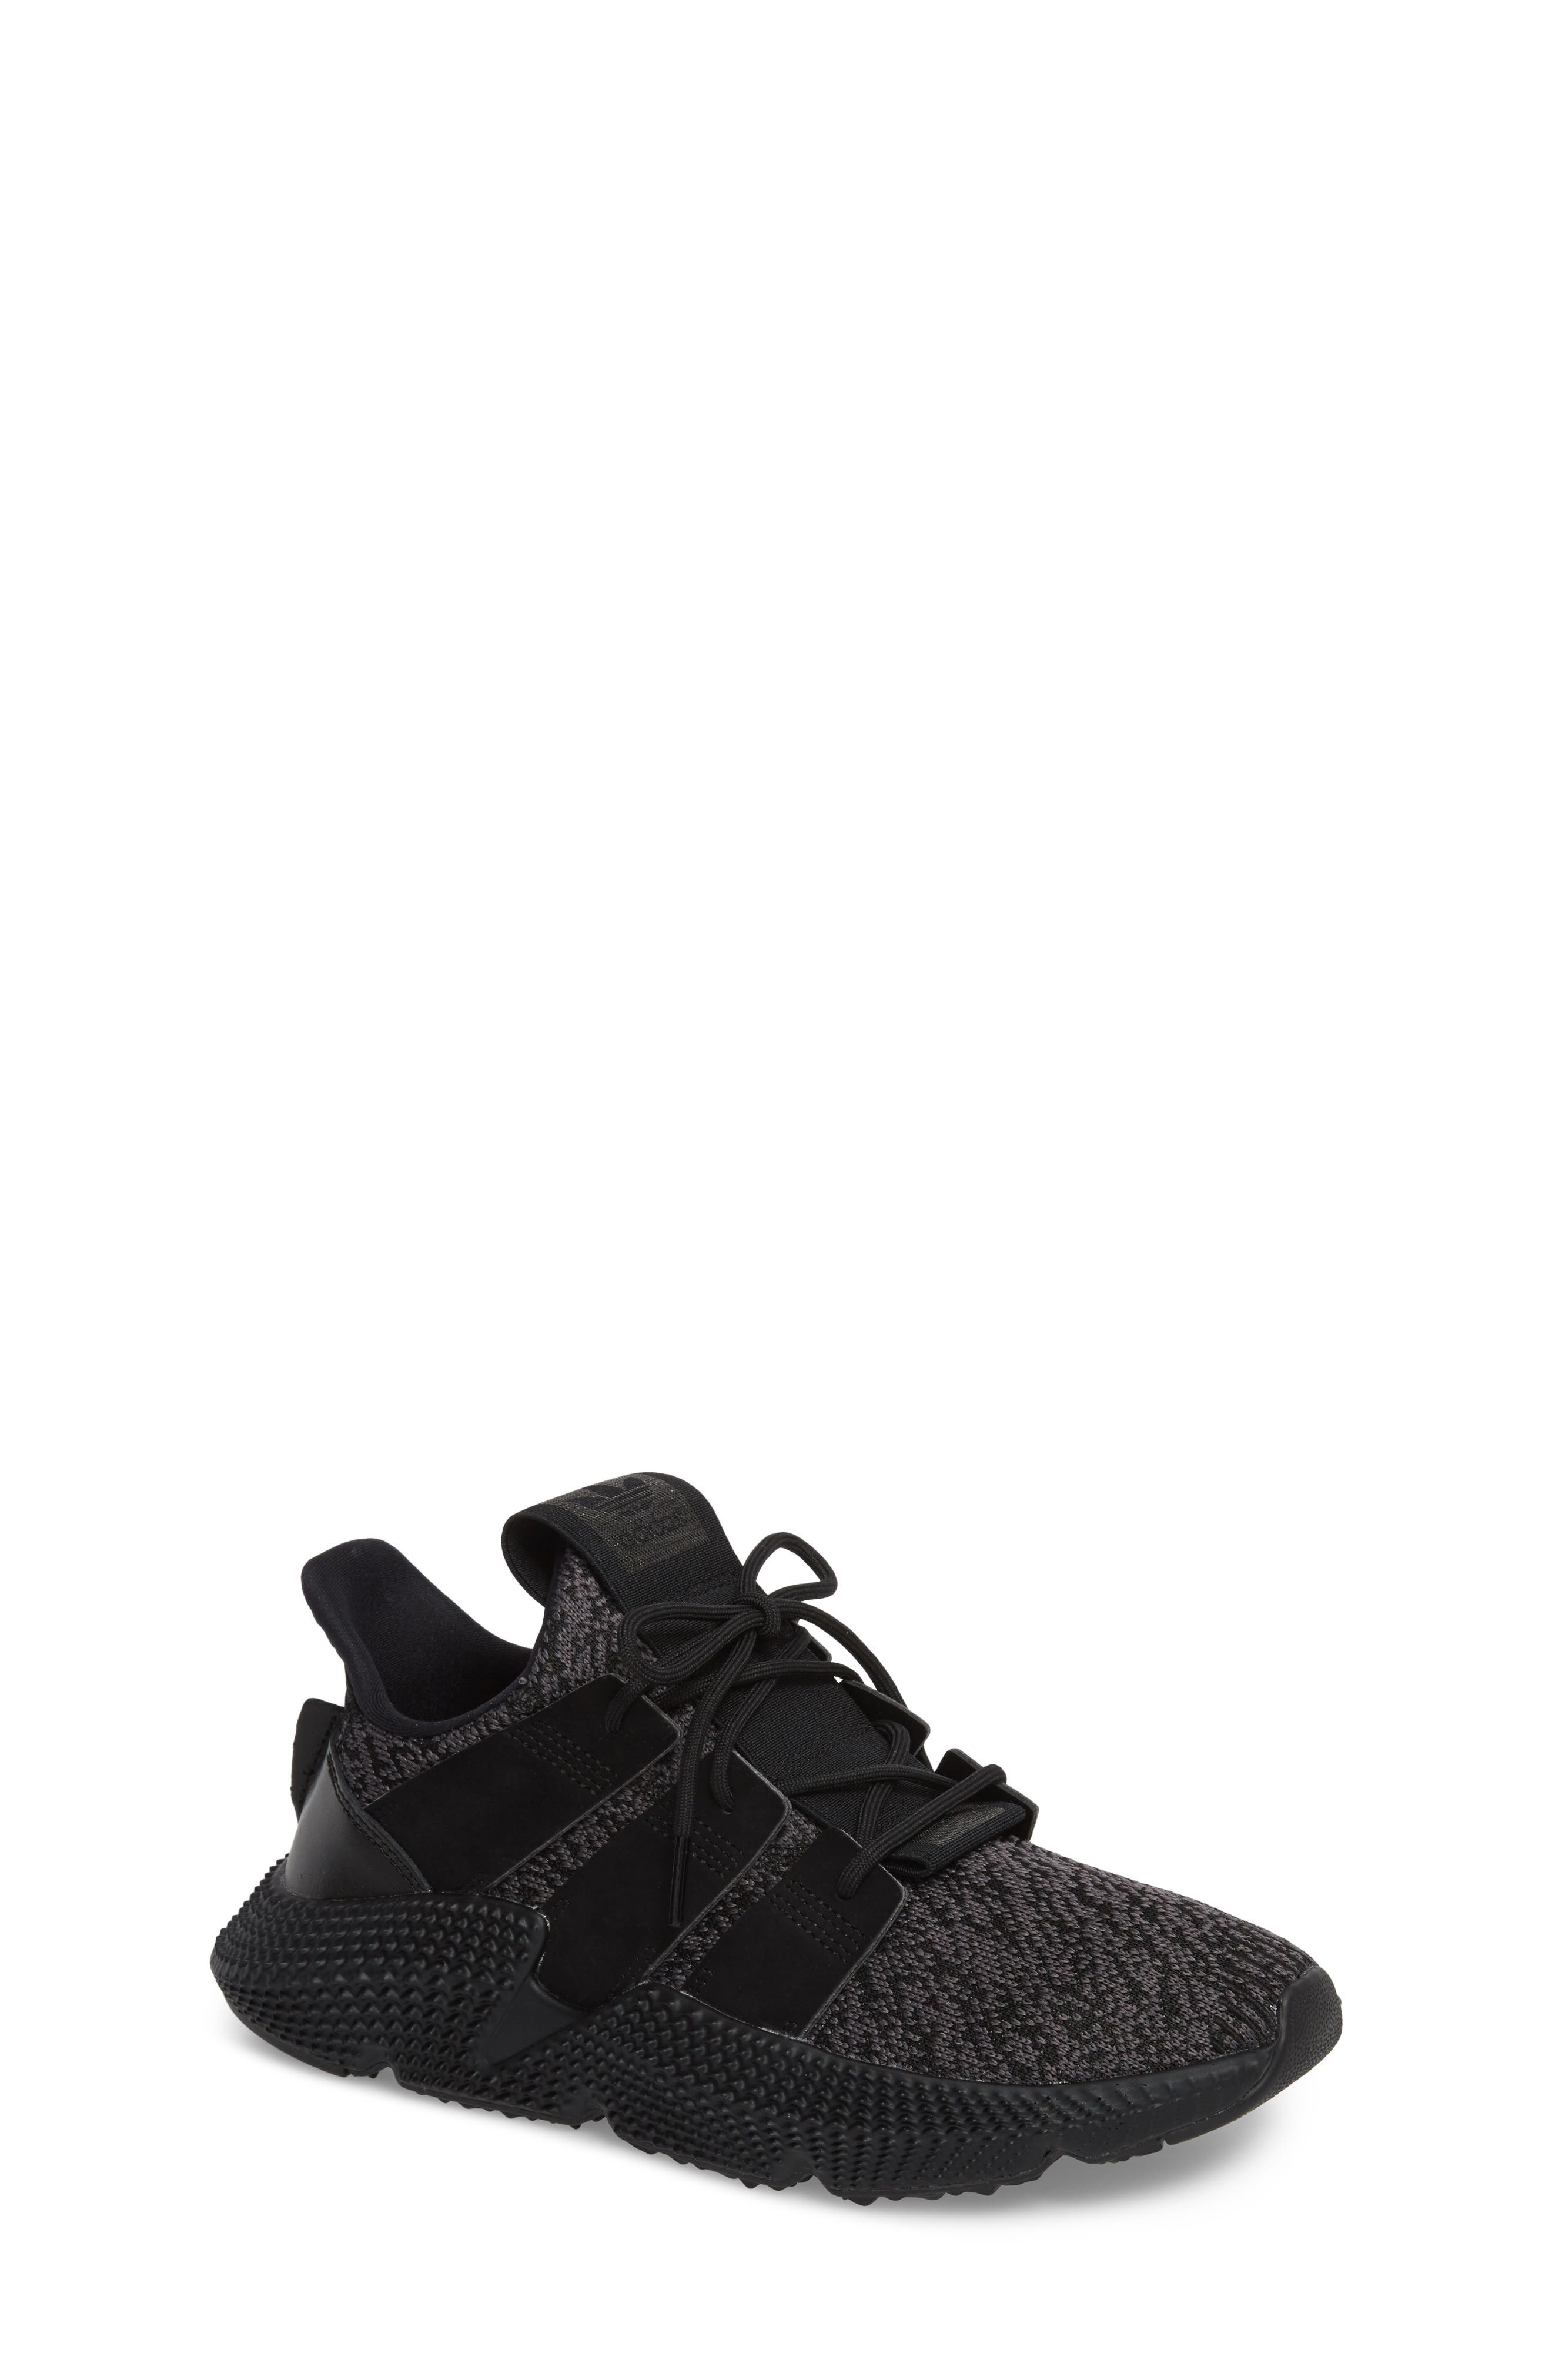 ADIDAS Prophere Sneaker, Main, color, 001